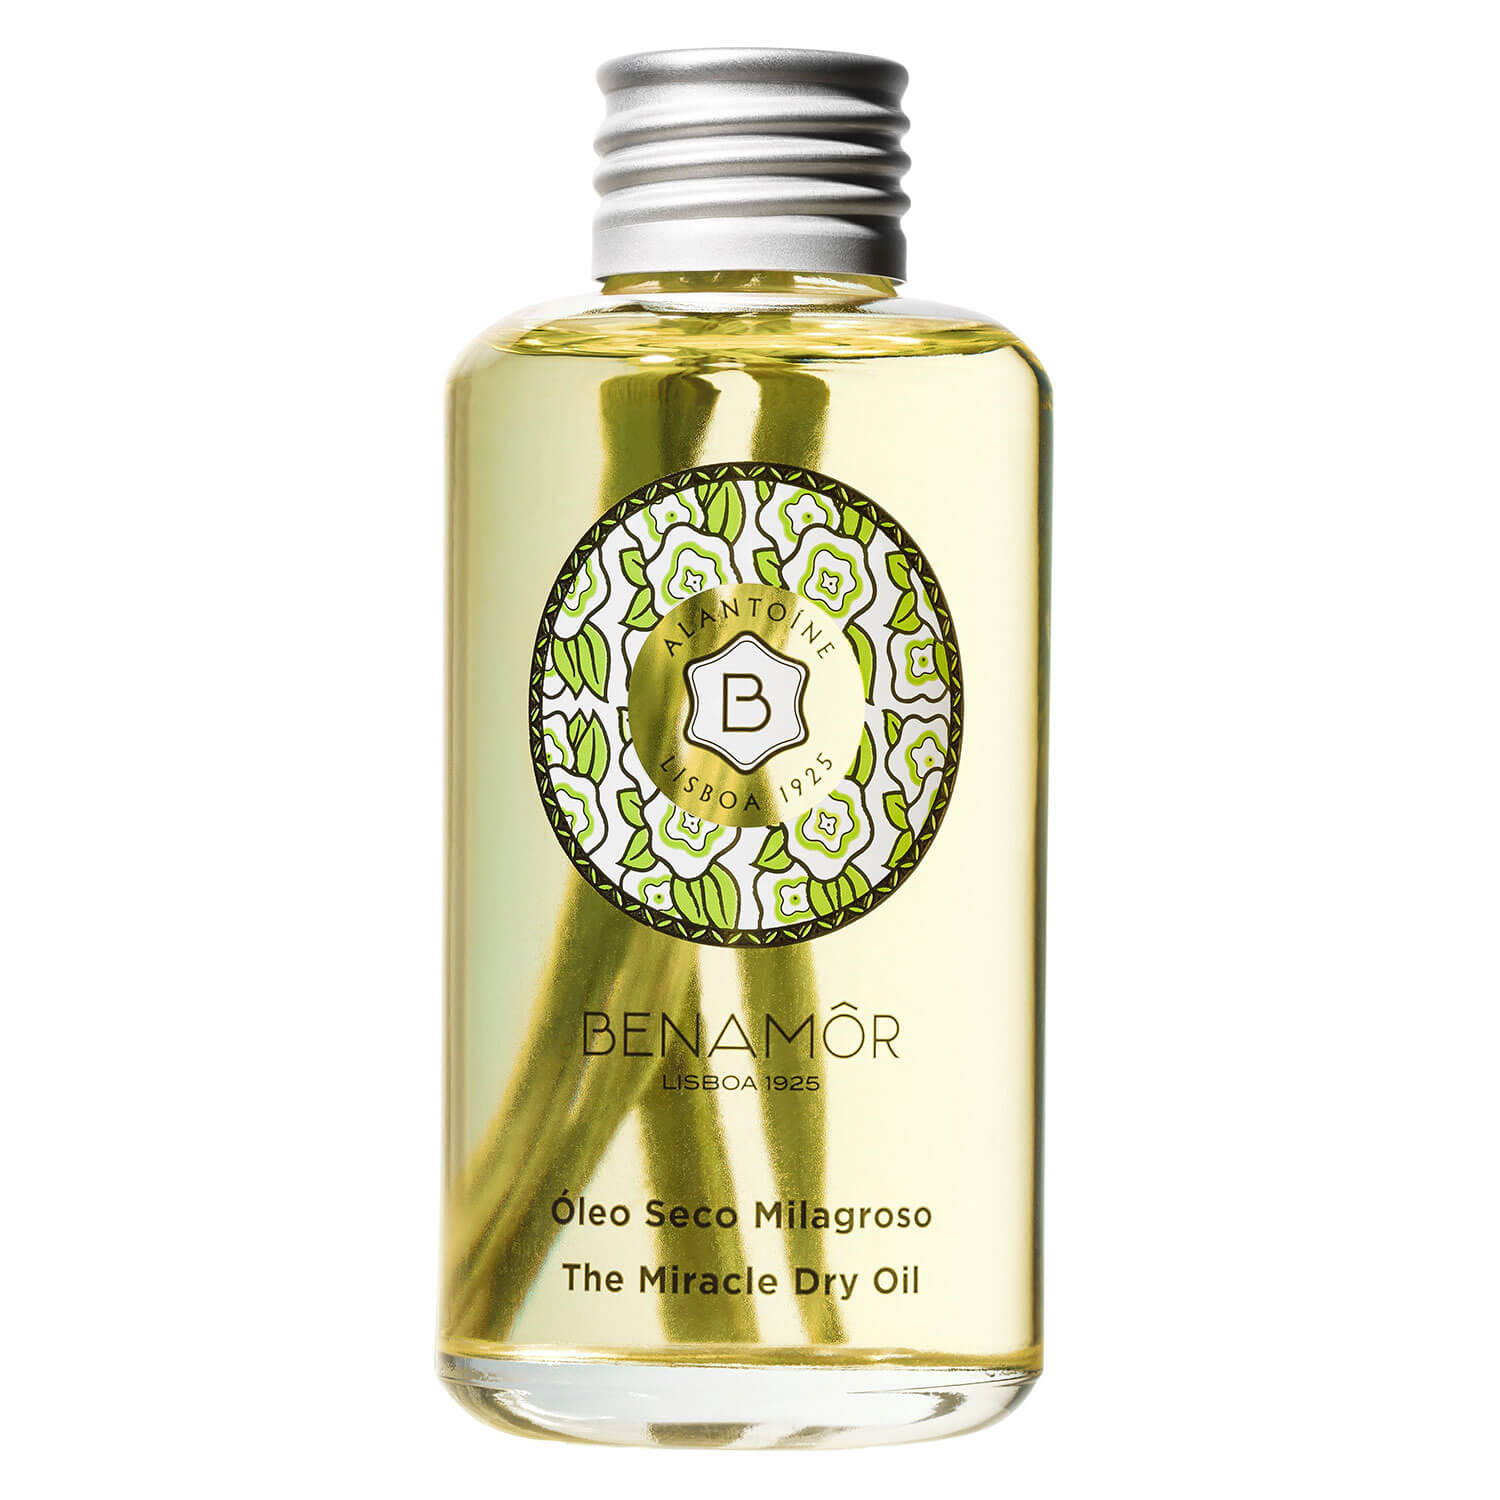 Alantoíne - The Miracle Dry Oil